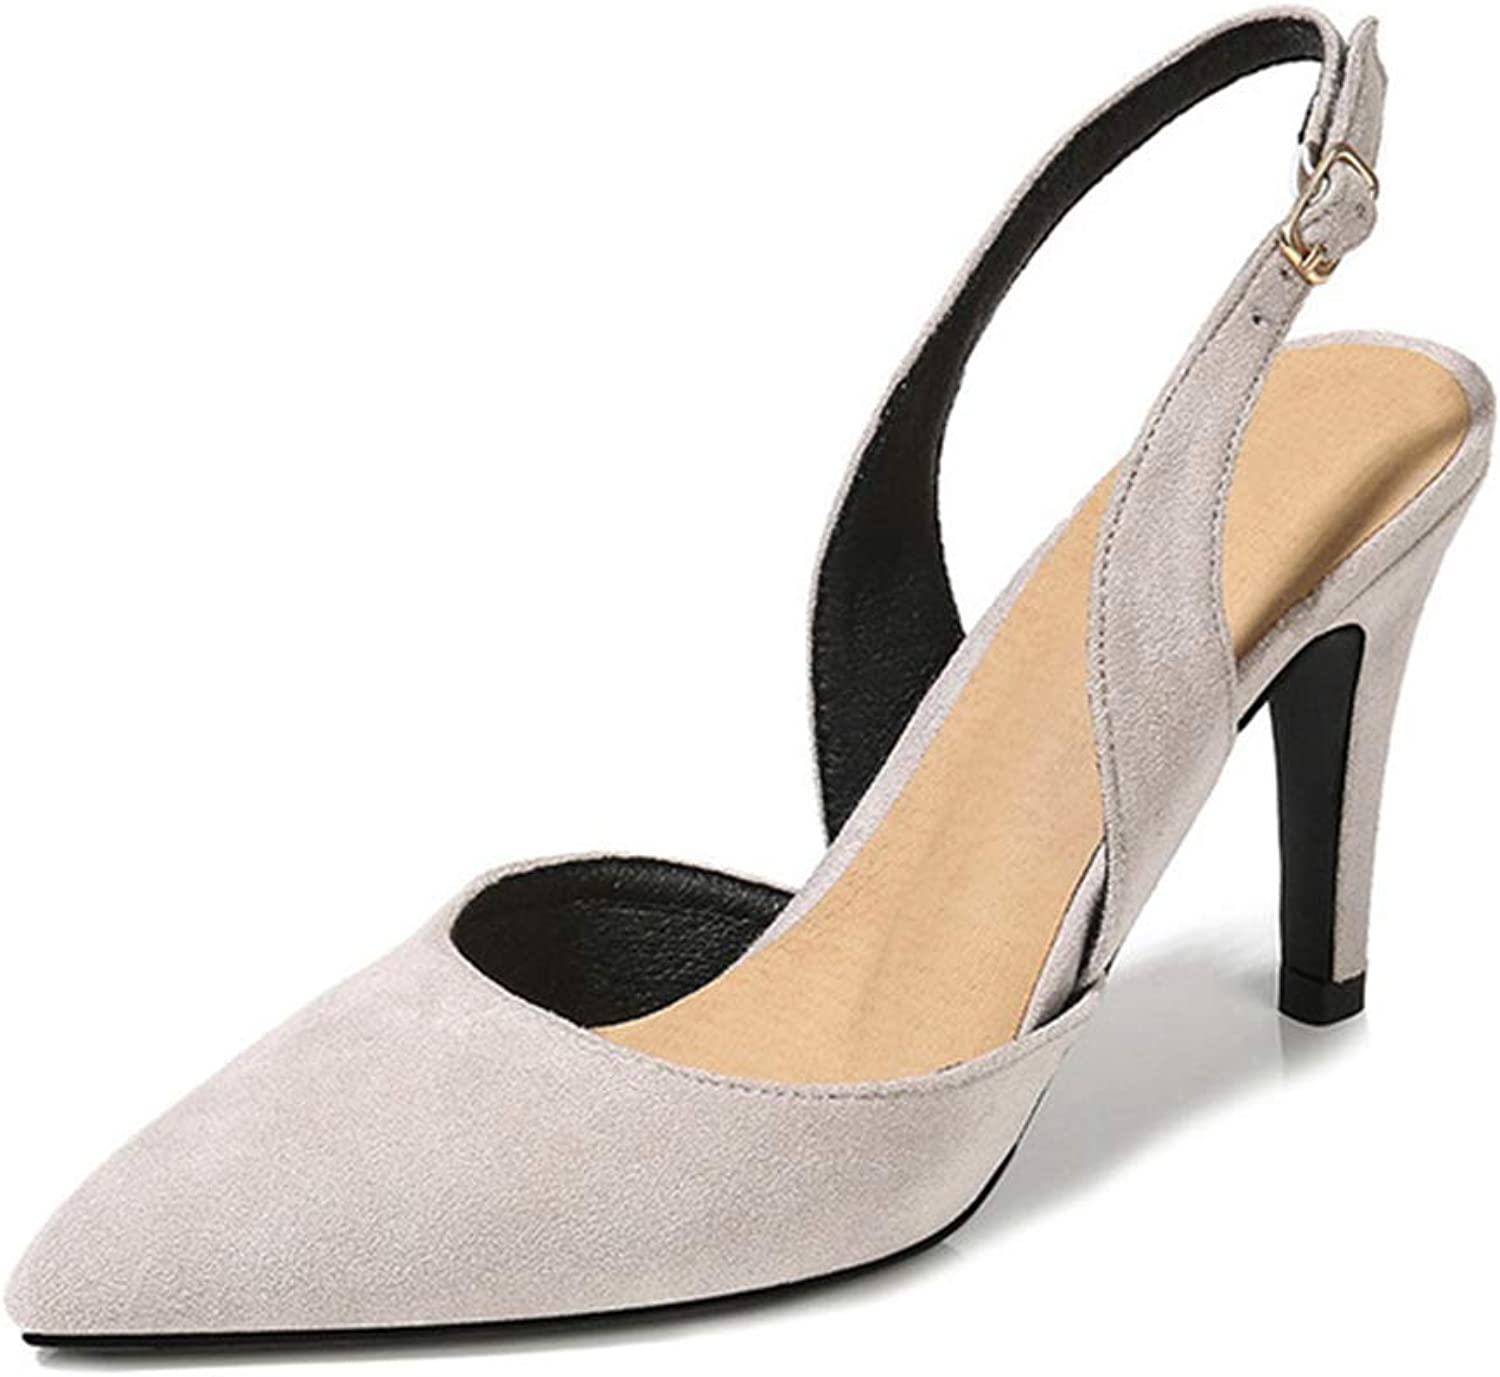 Kyle Walsh Pa Women Pumps shoes Slip-on Pointed Toe Stiletto Ladies Suede Casual Sandals